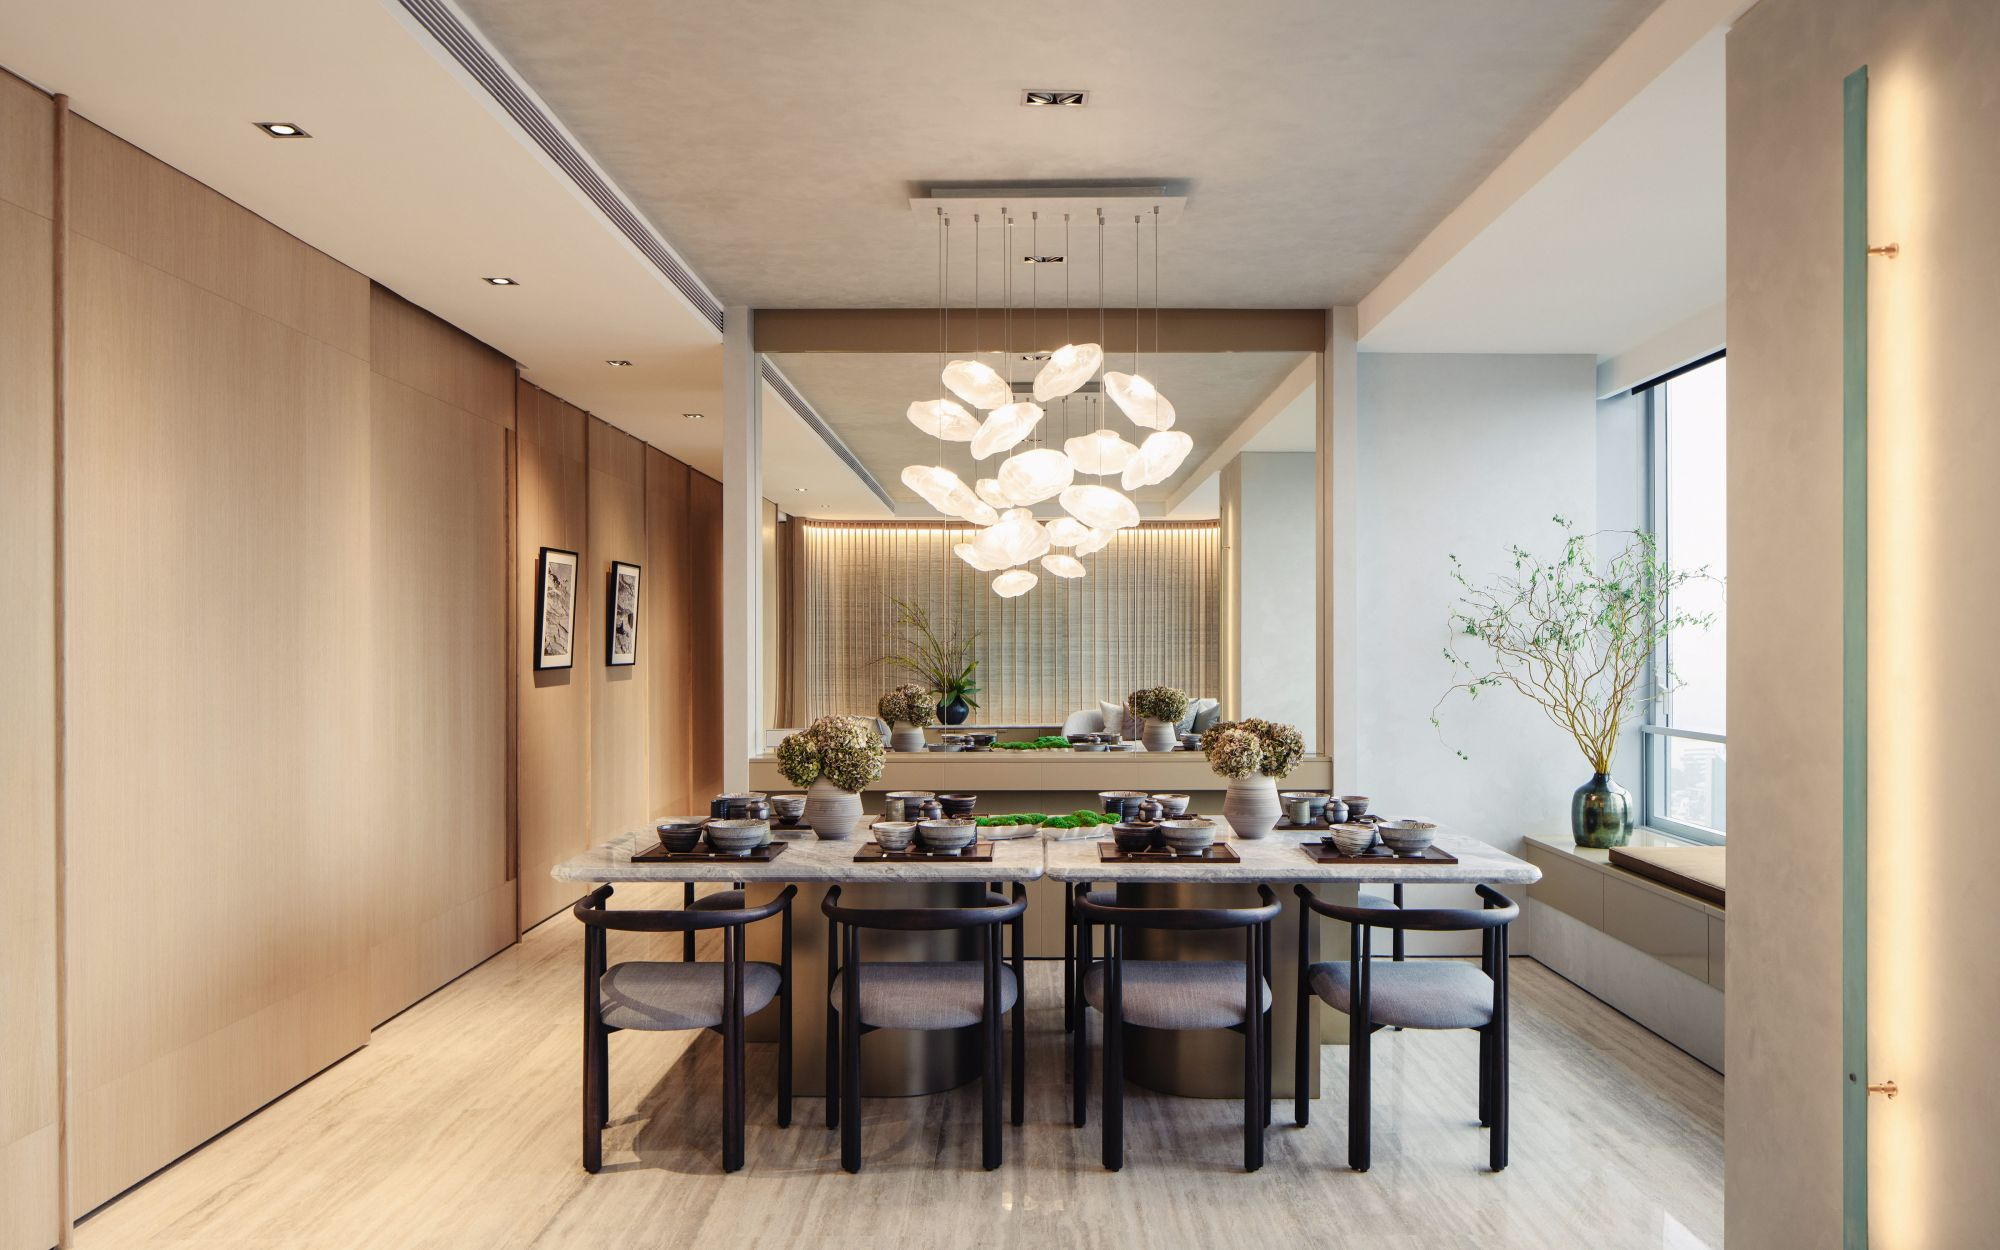 Home Tour: This Japanese-Style Penthouse At Angullia Park Takes Inspiration From Nature